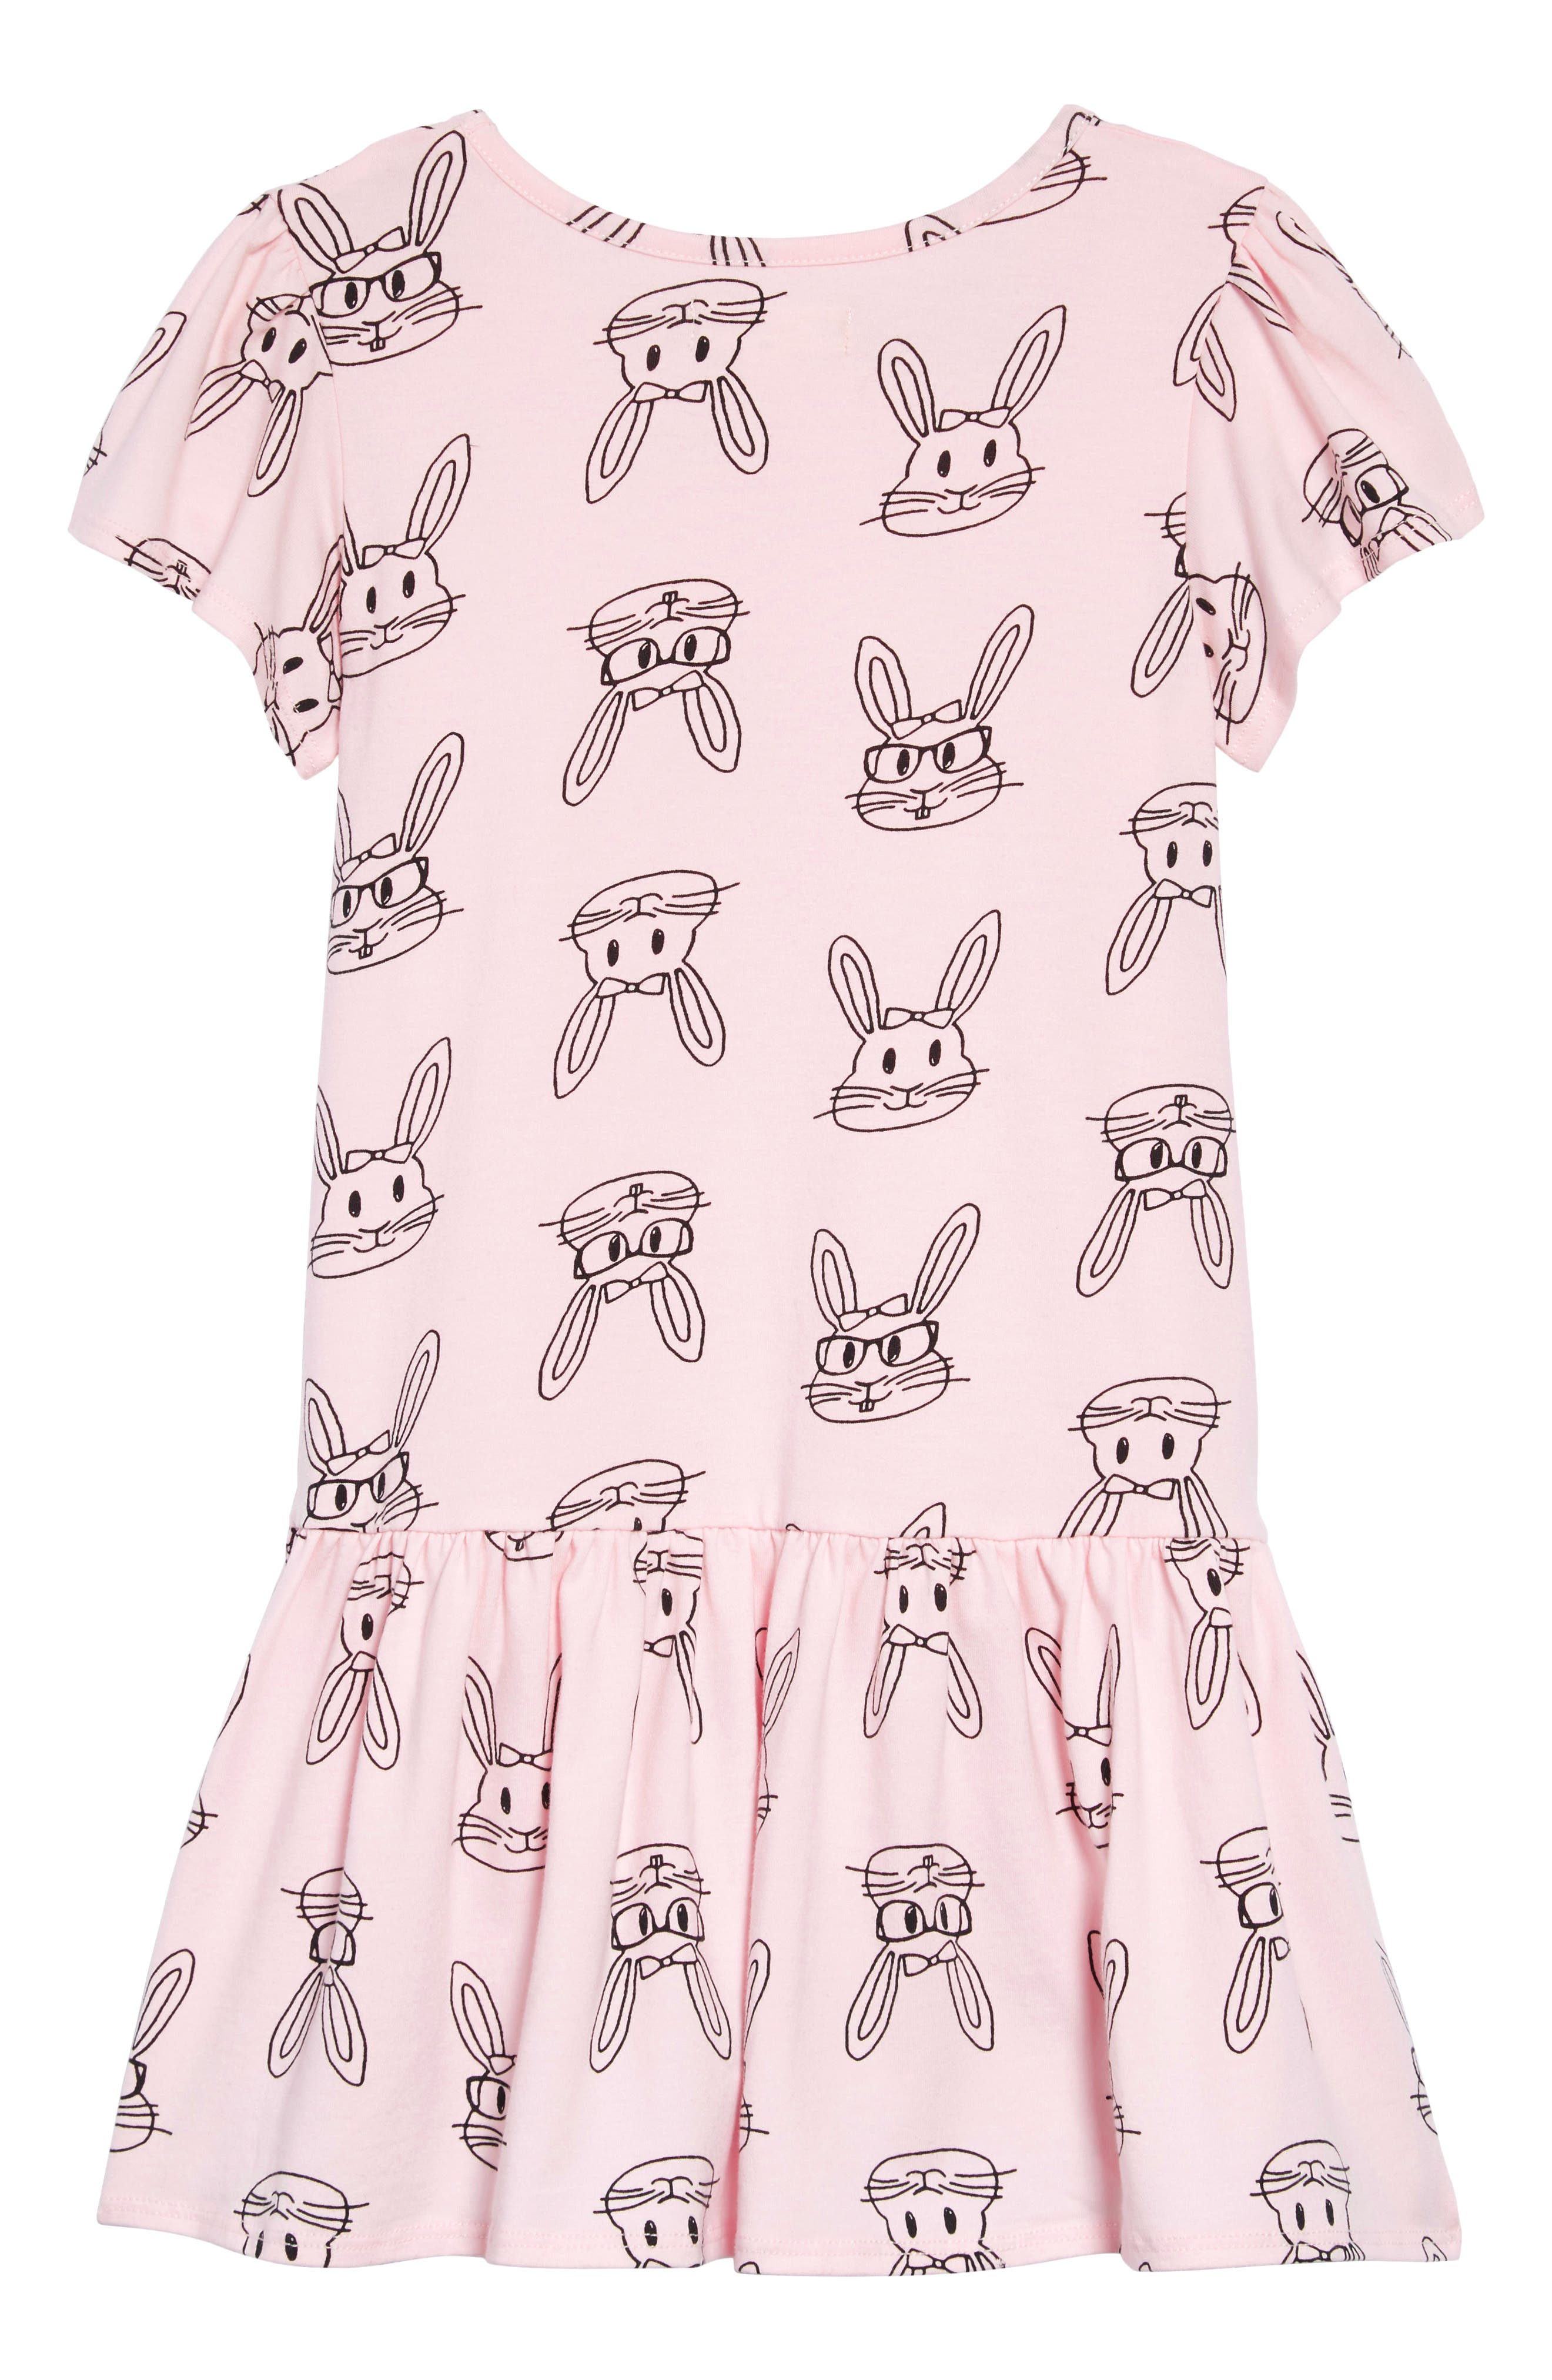 TUCKER + TATE, Tucker & Tate Print Jersey Dress, Alternate thumbnail 2, color, PINK AMOUR BUNNY DOODLE